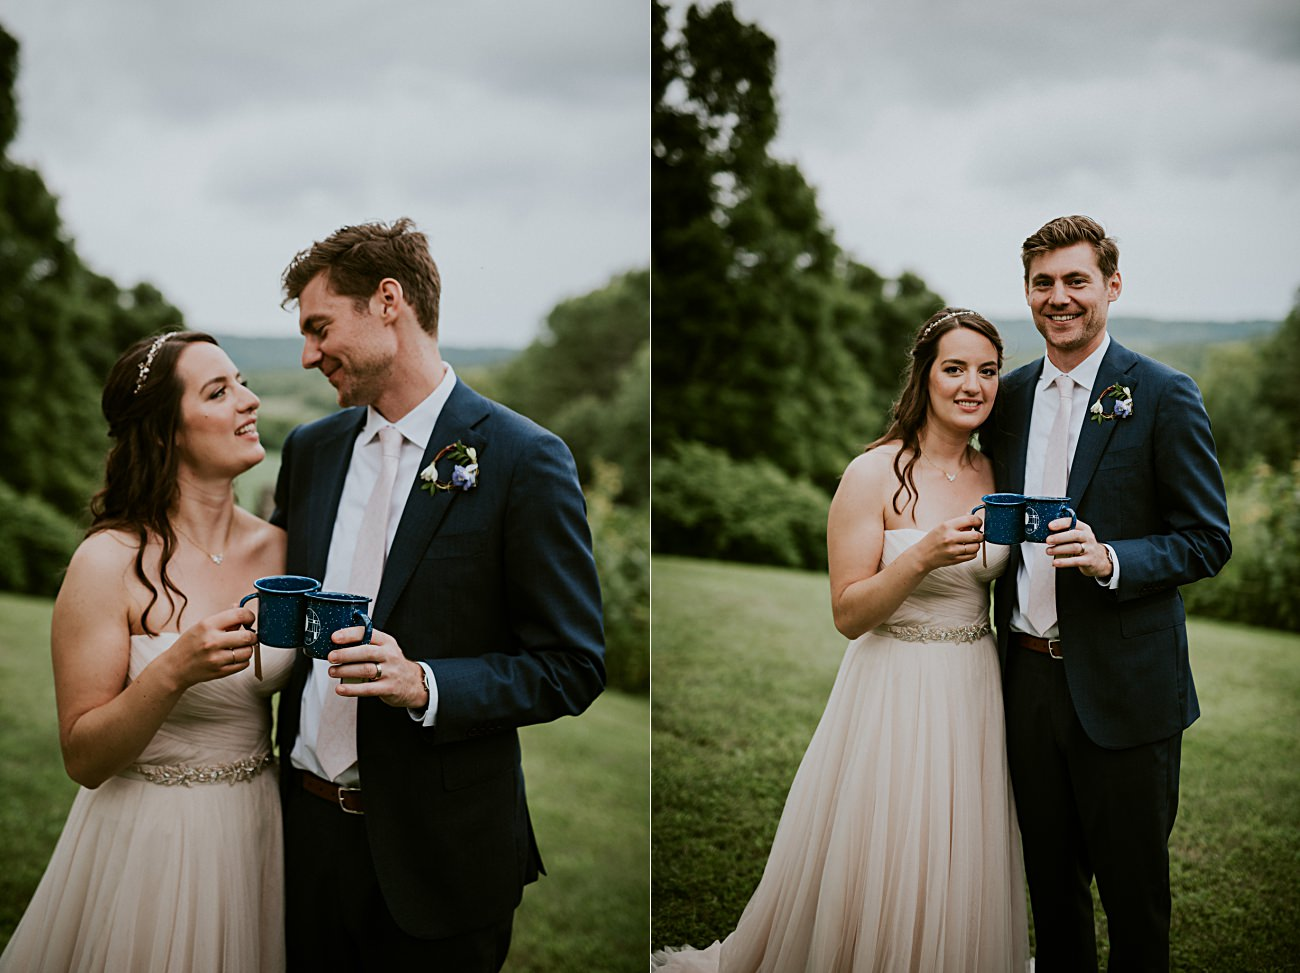 Navy Groom Suit, Bride and Groom Photos, Couples photos on wedding days, Stormy sky's, Blush wedding gown, Backyard Hilltop Wedding in Spring Green Wisconsin, Madison WI Wedding Photographer